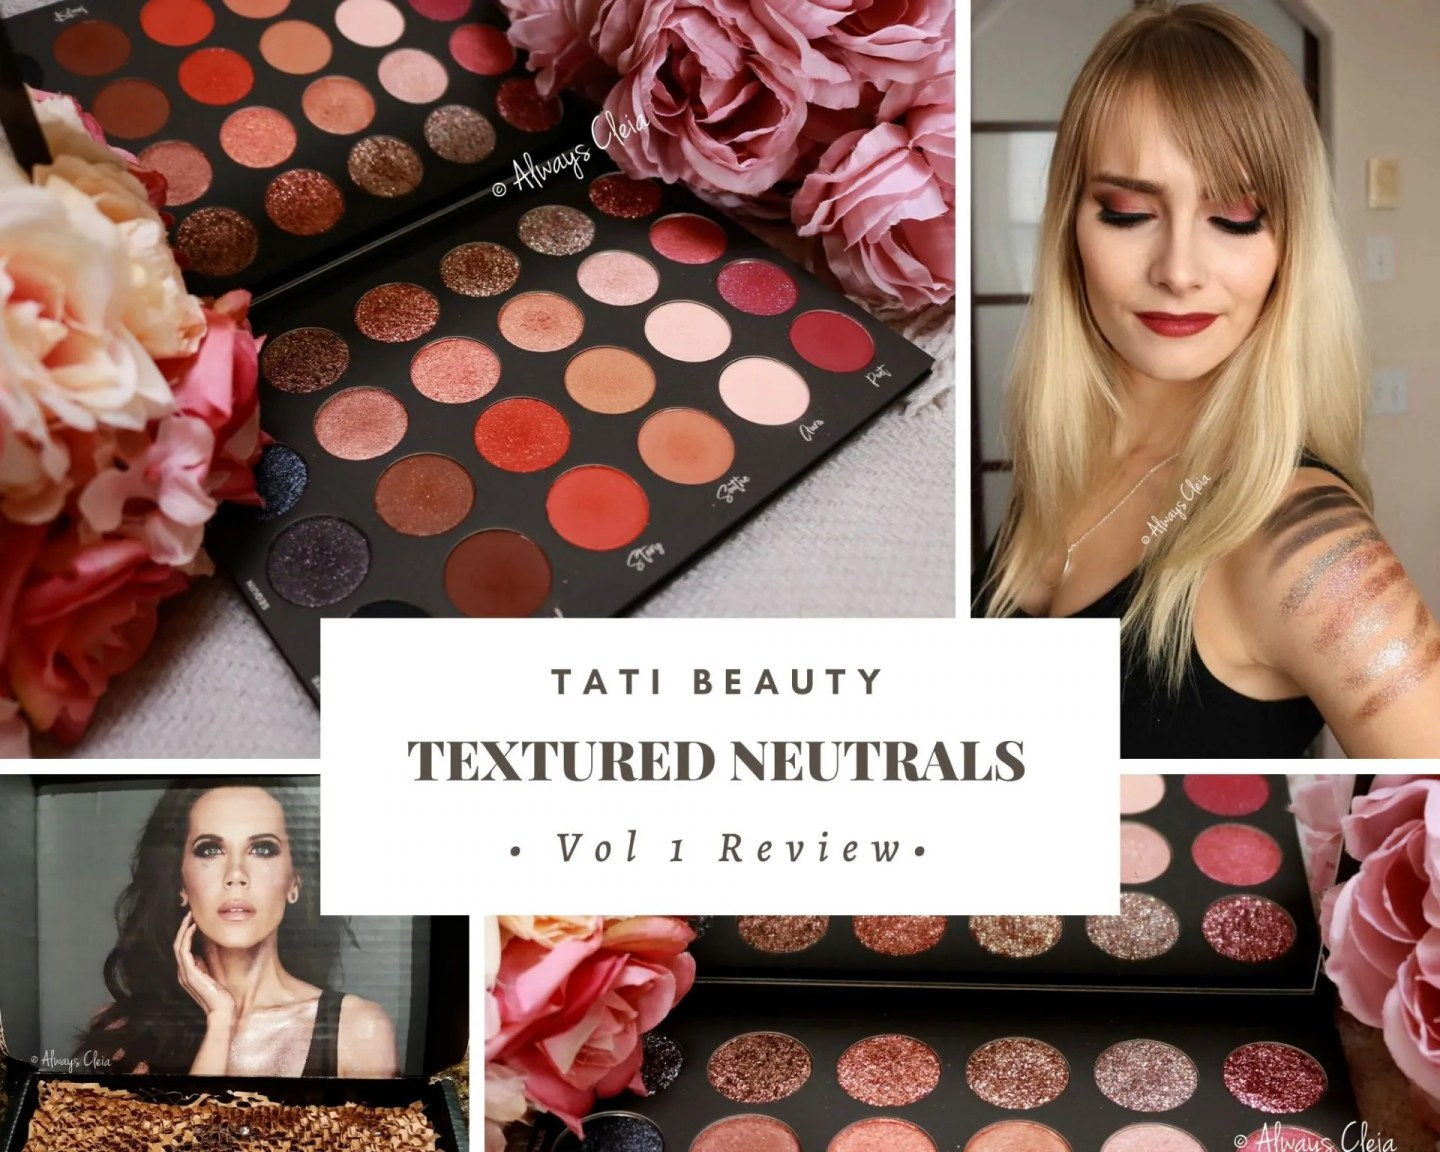 Tati Beauty Textured Neutrals Vol 1 Review + Swatches + 5 Looks